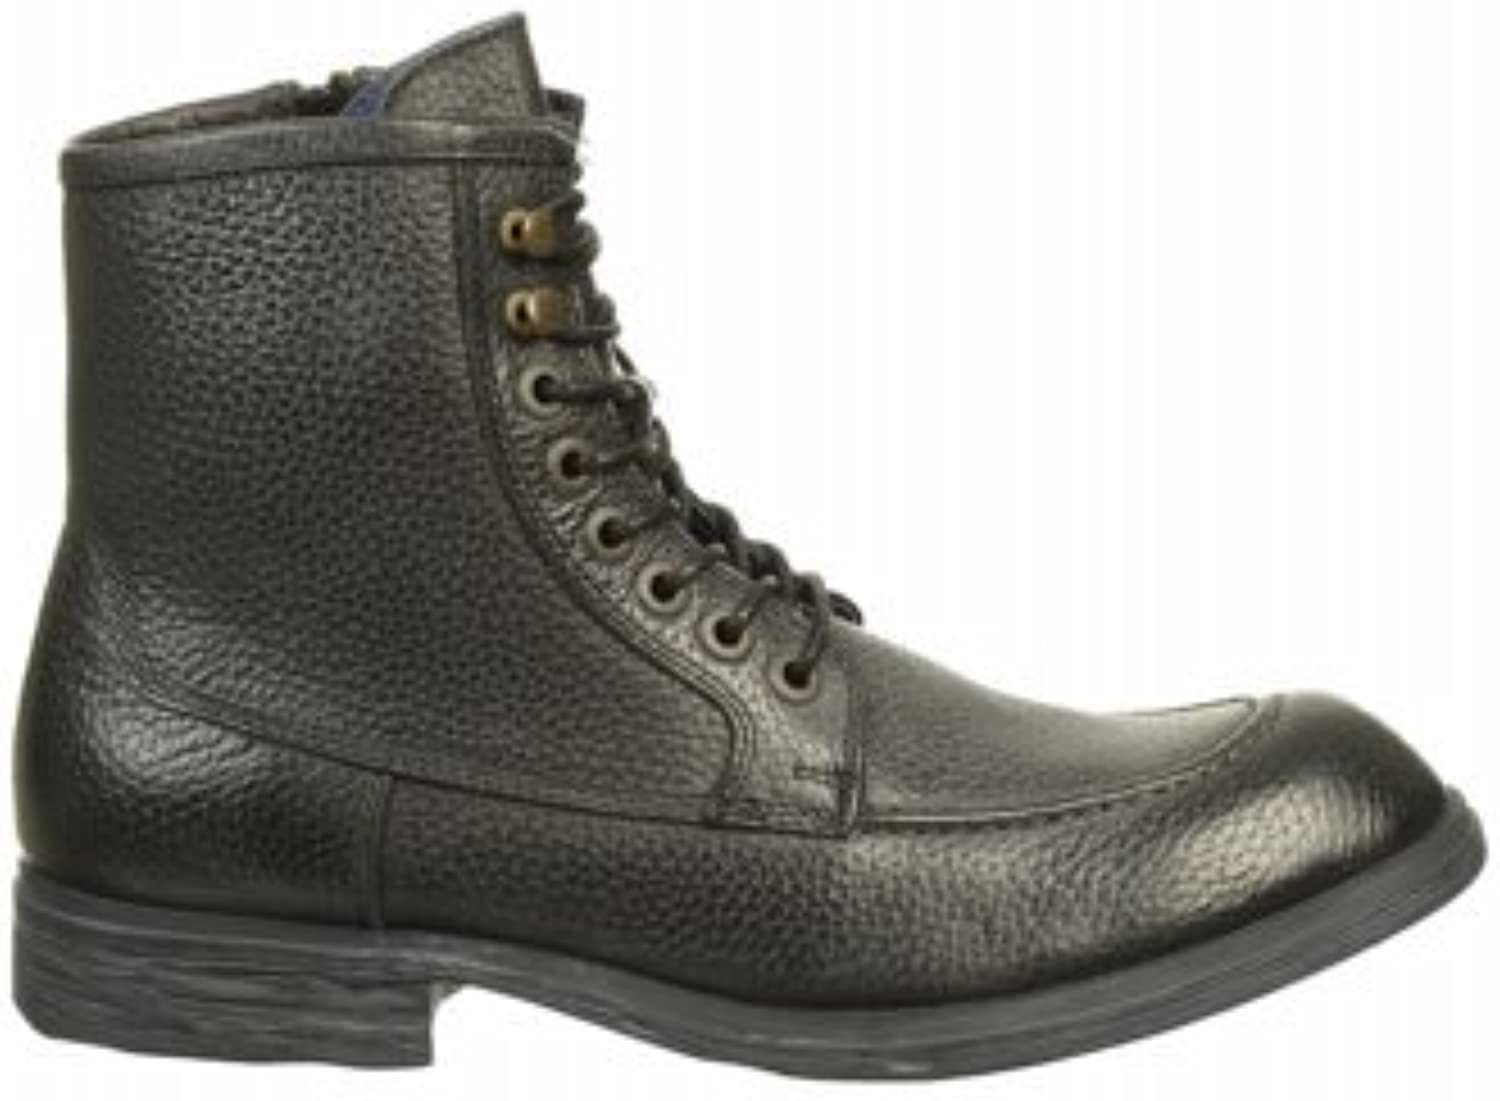 Kenneth Cole New York Men's Work Hours RM 79761 Leather Boots Black Size 8